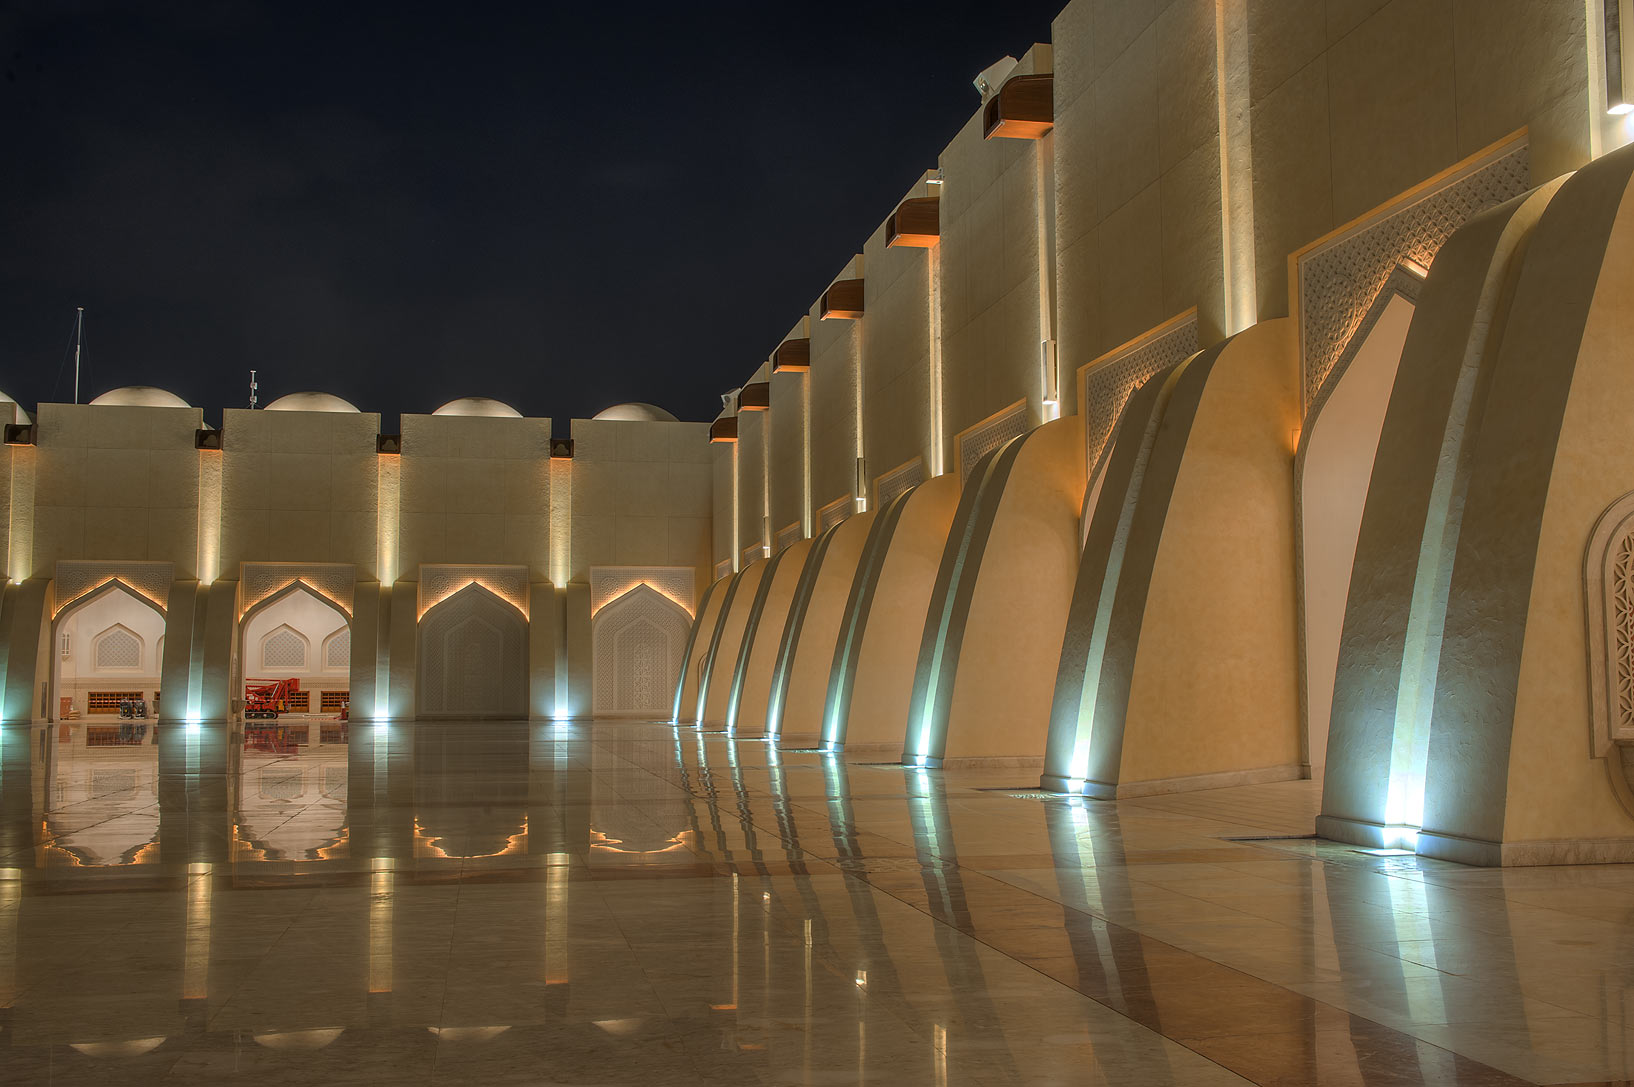 Courtyard of State Mosque (Sheikh Muhammad Ibn Abdul Wahhab Mosque). Doha, Qatar